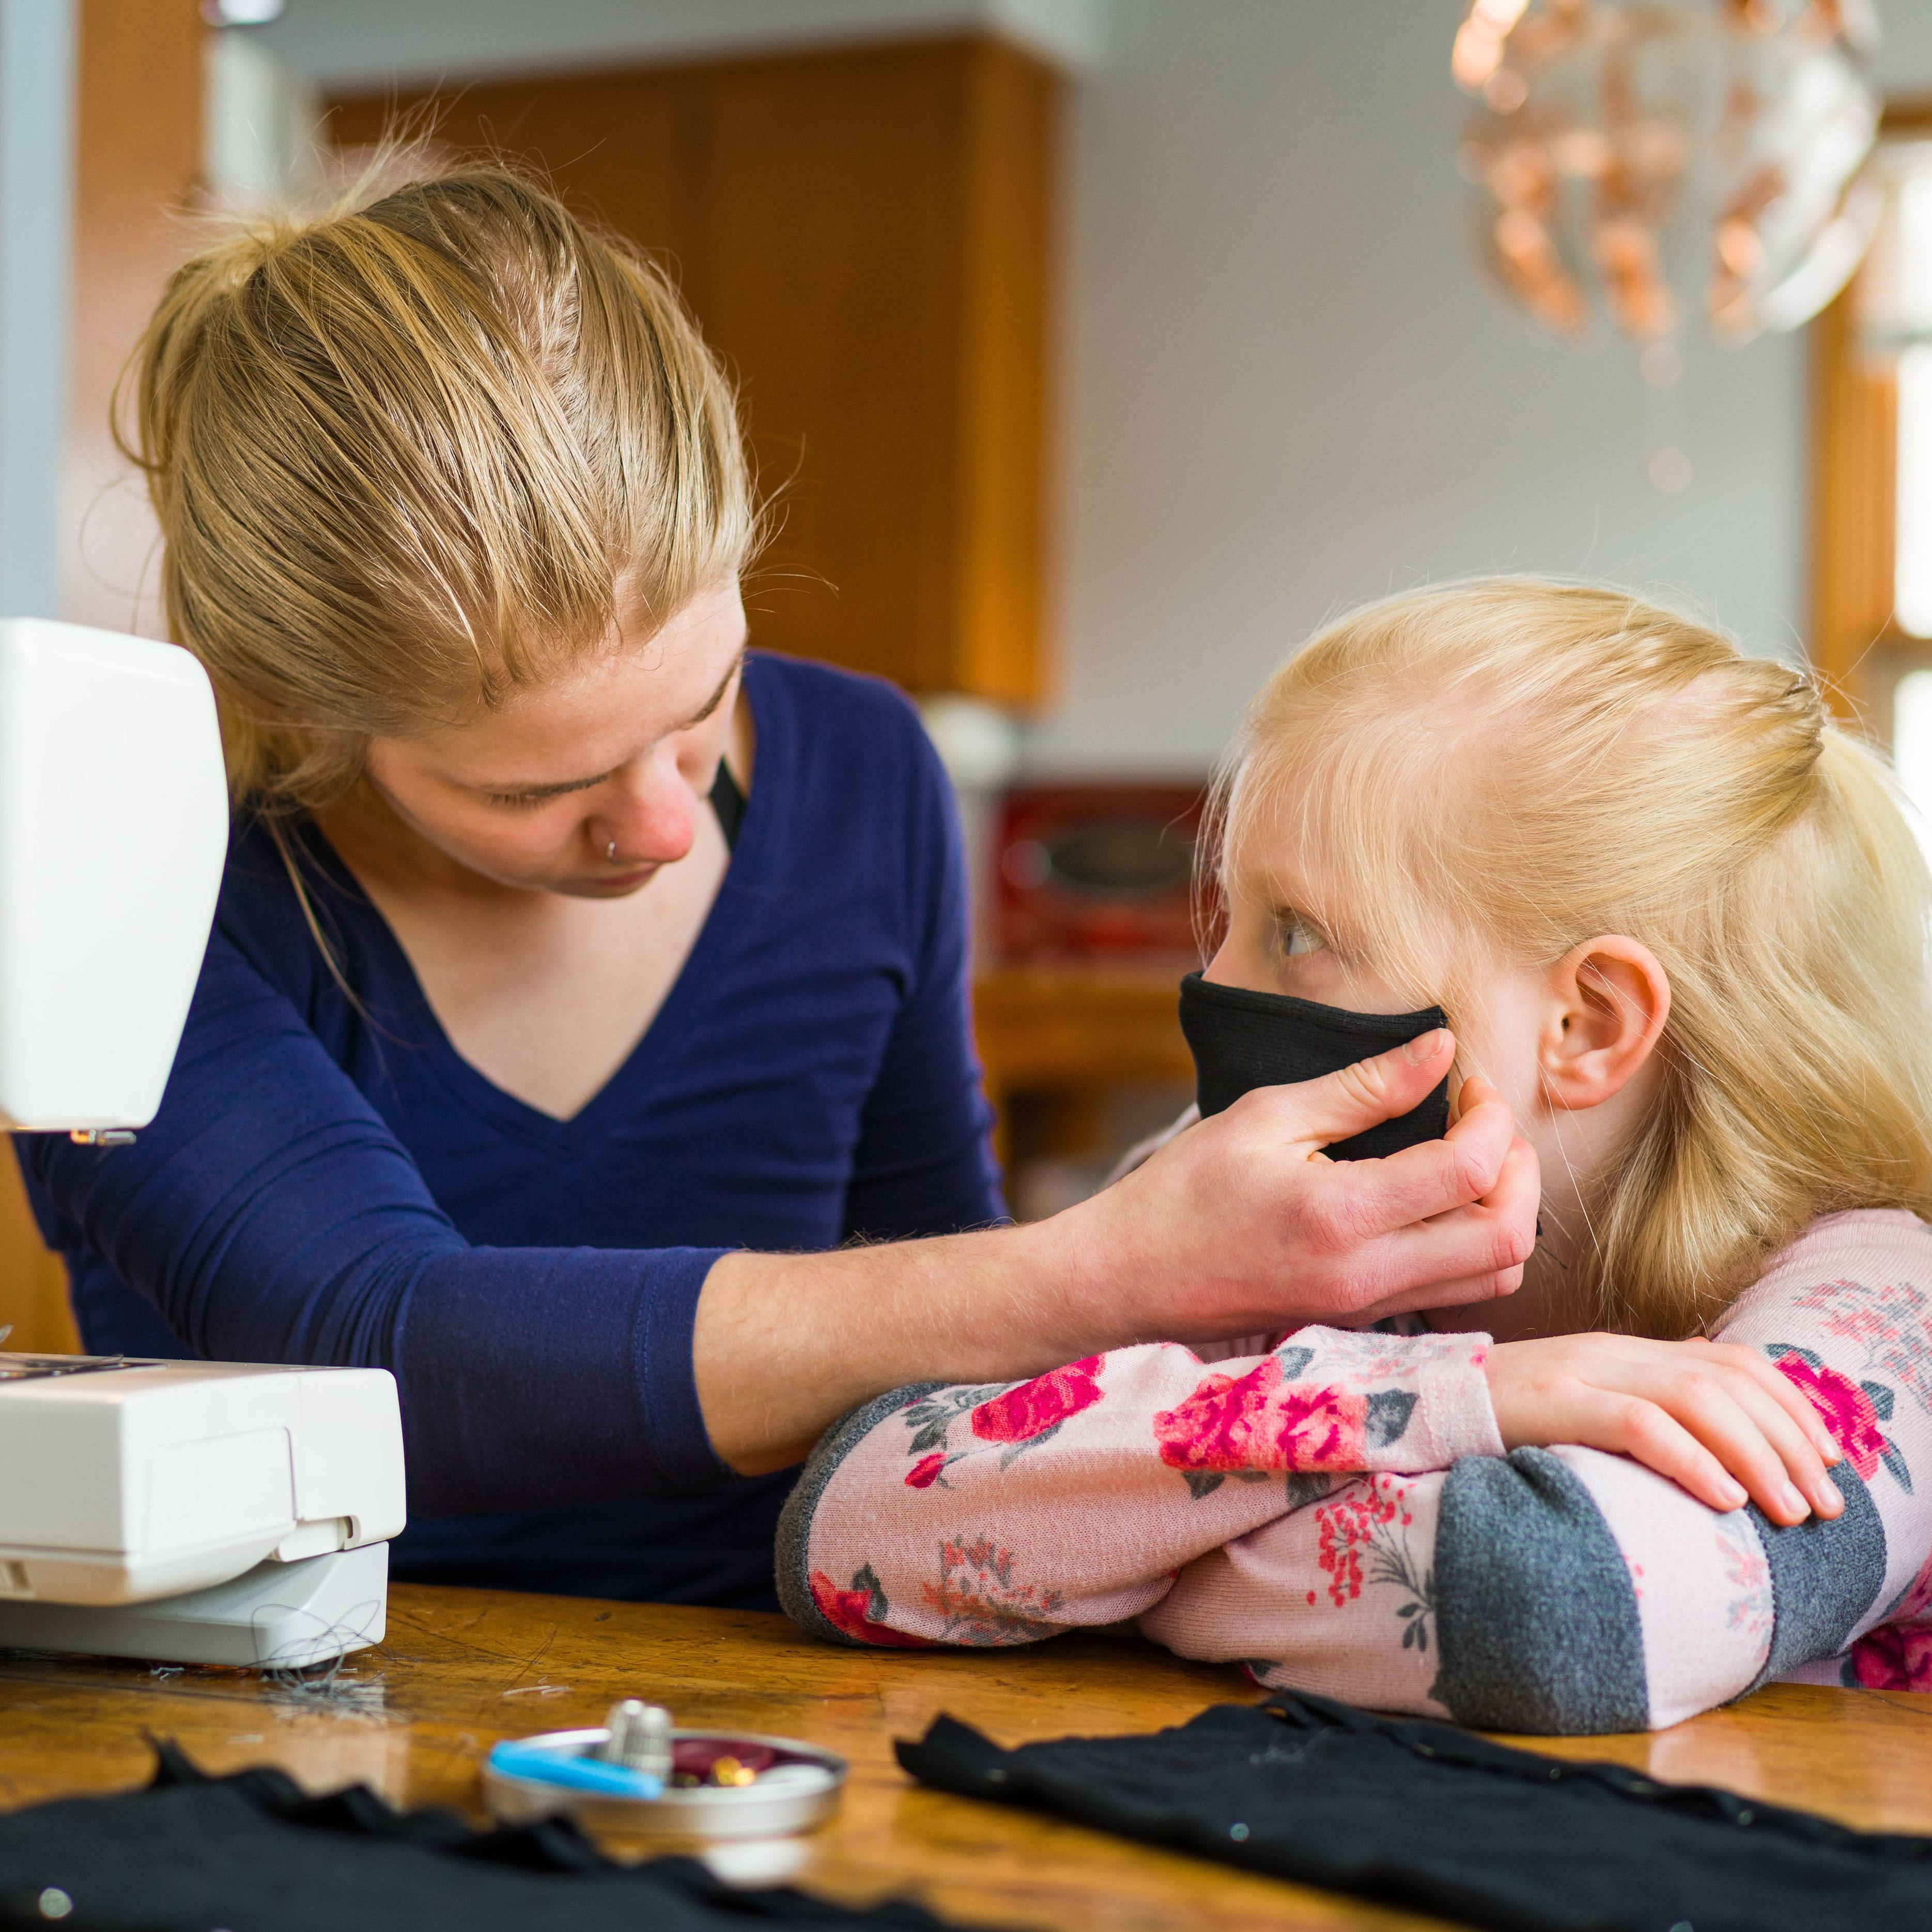 a young Caucasian woman at a sewing machine making face masks and with a little Caucasian girl sitting next to her and trying on one of the masks